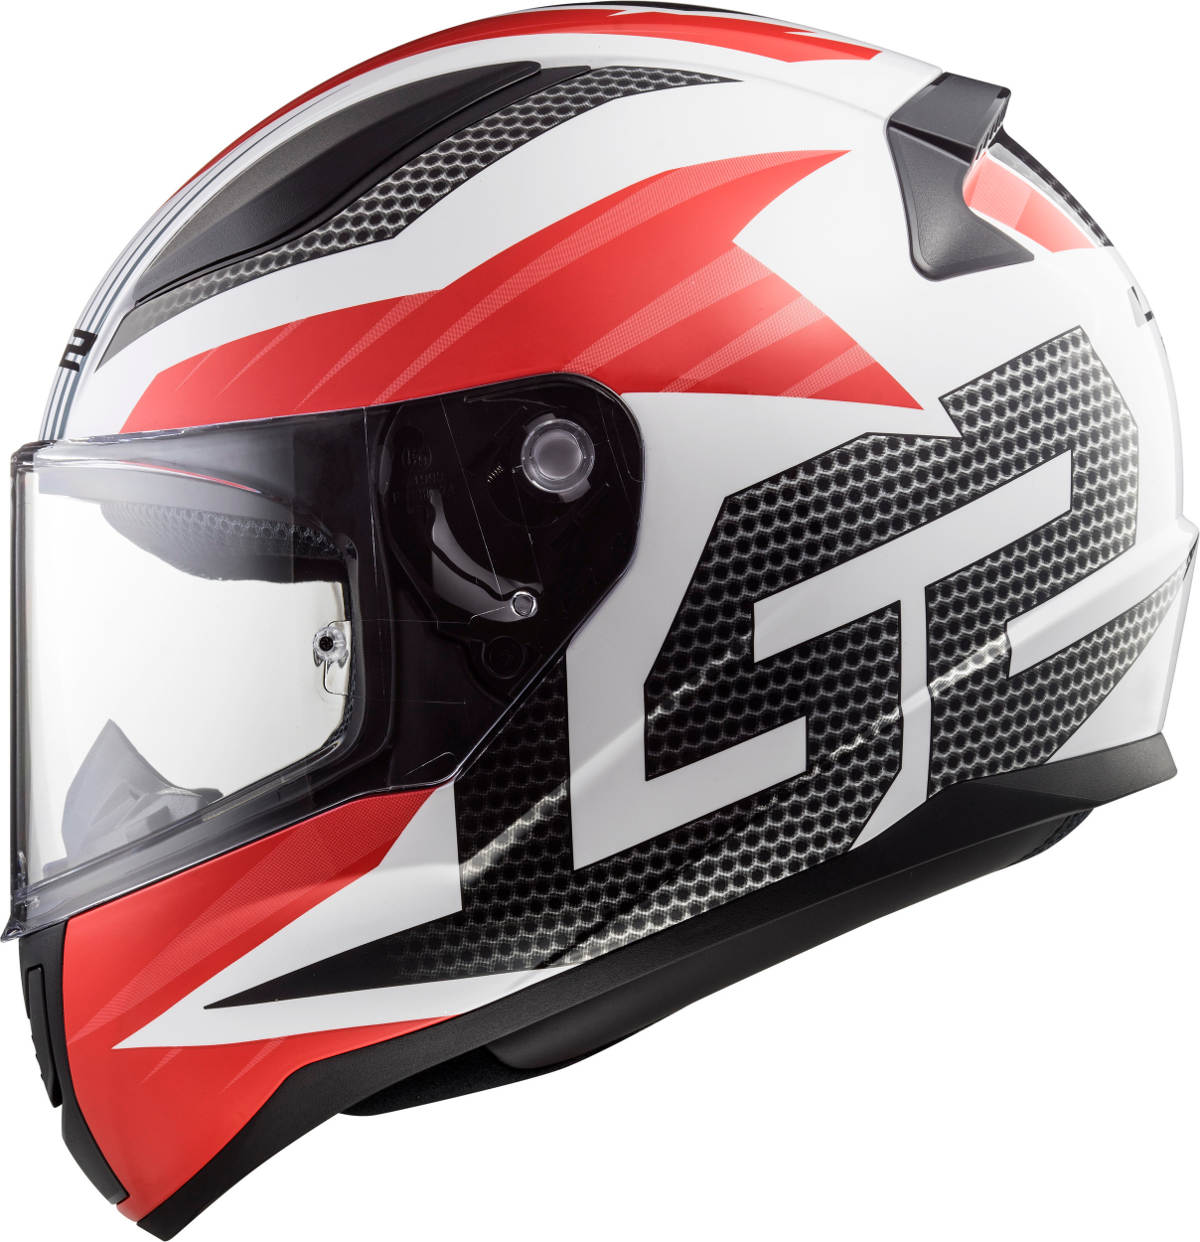 LS2 Rapid Motorcycle Helmet Grid Design - White and Red